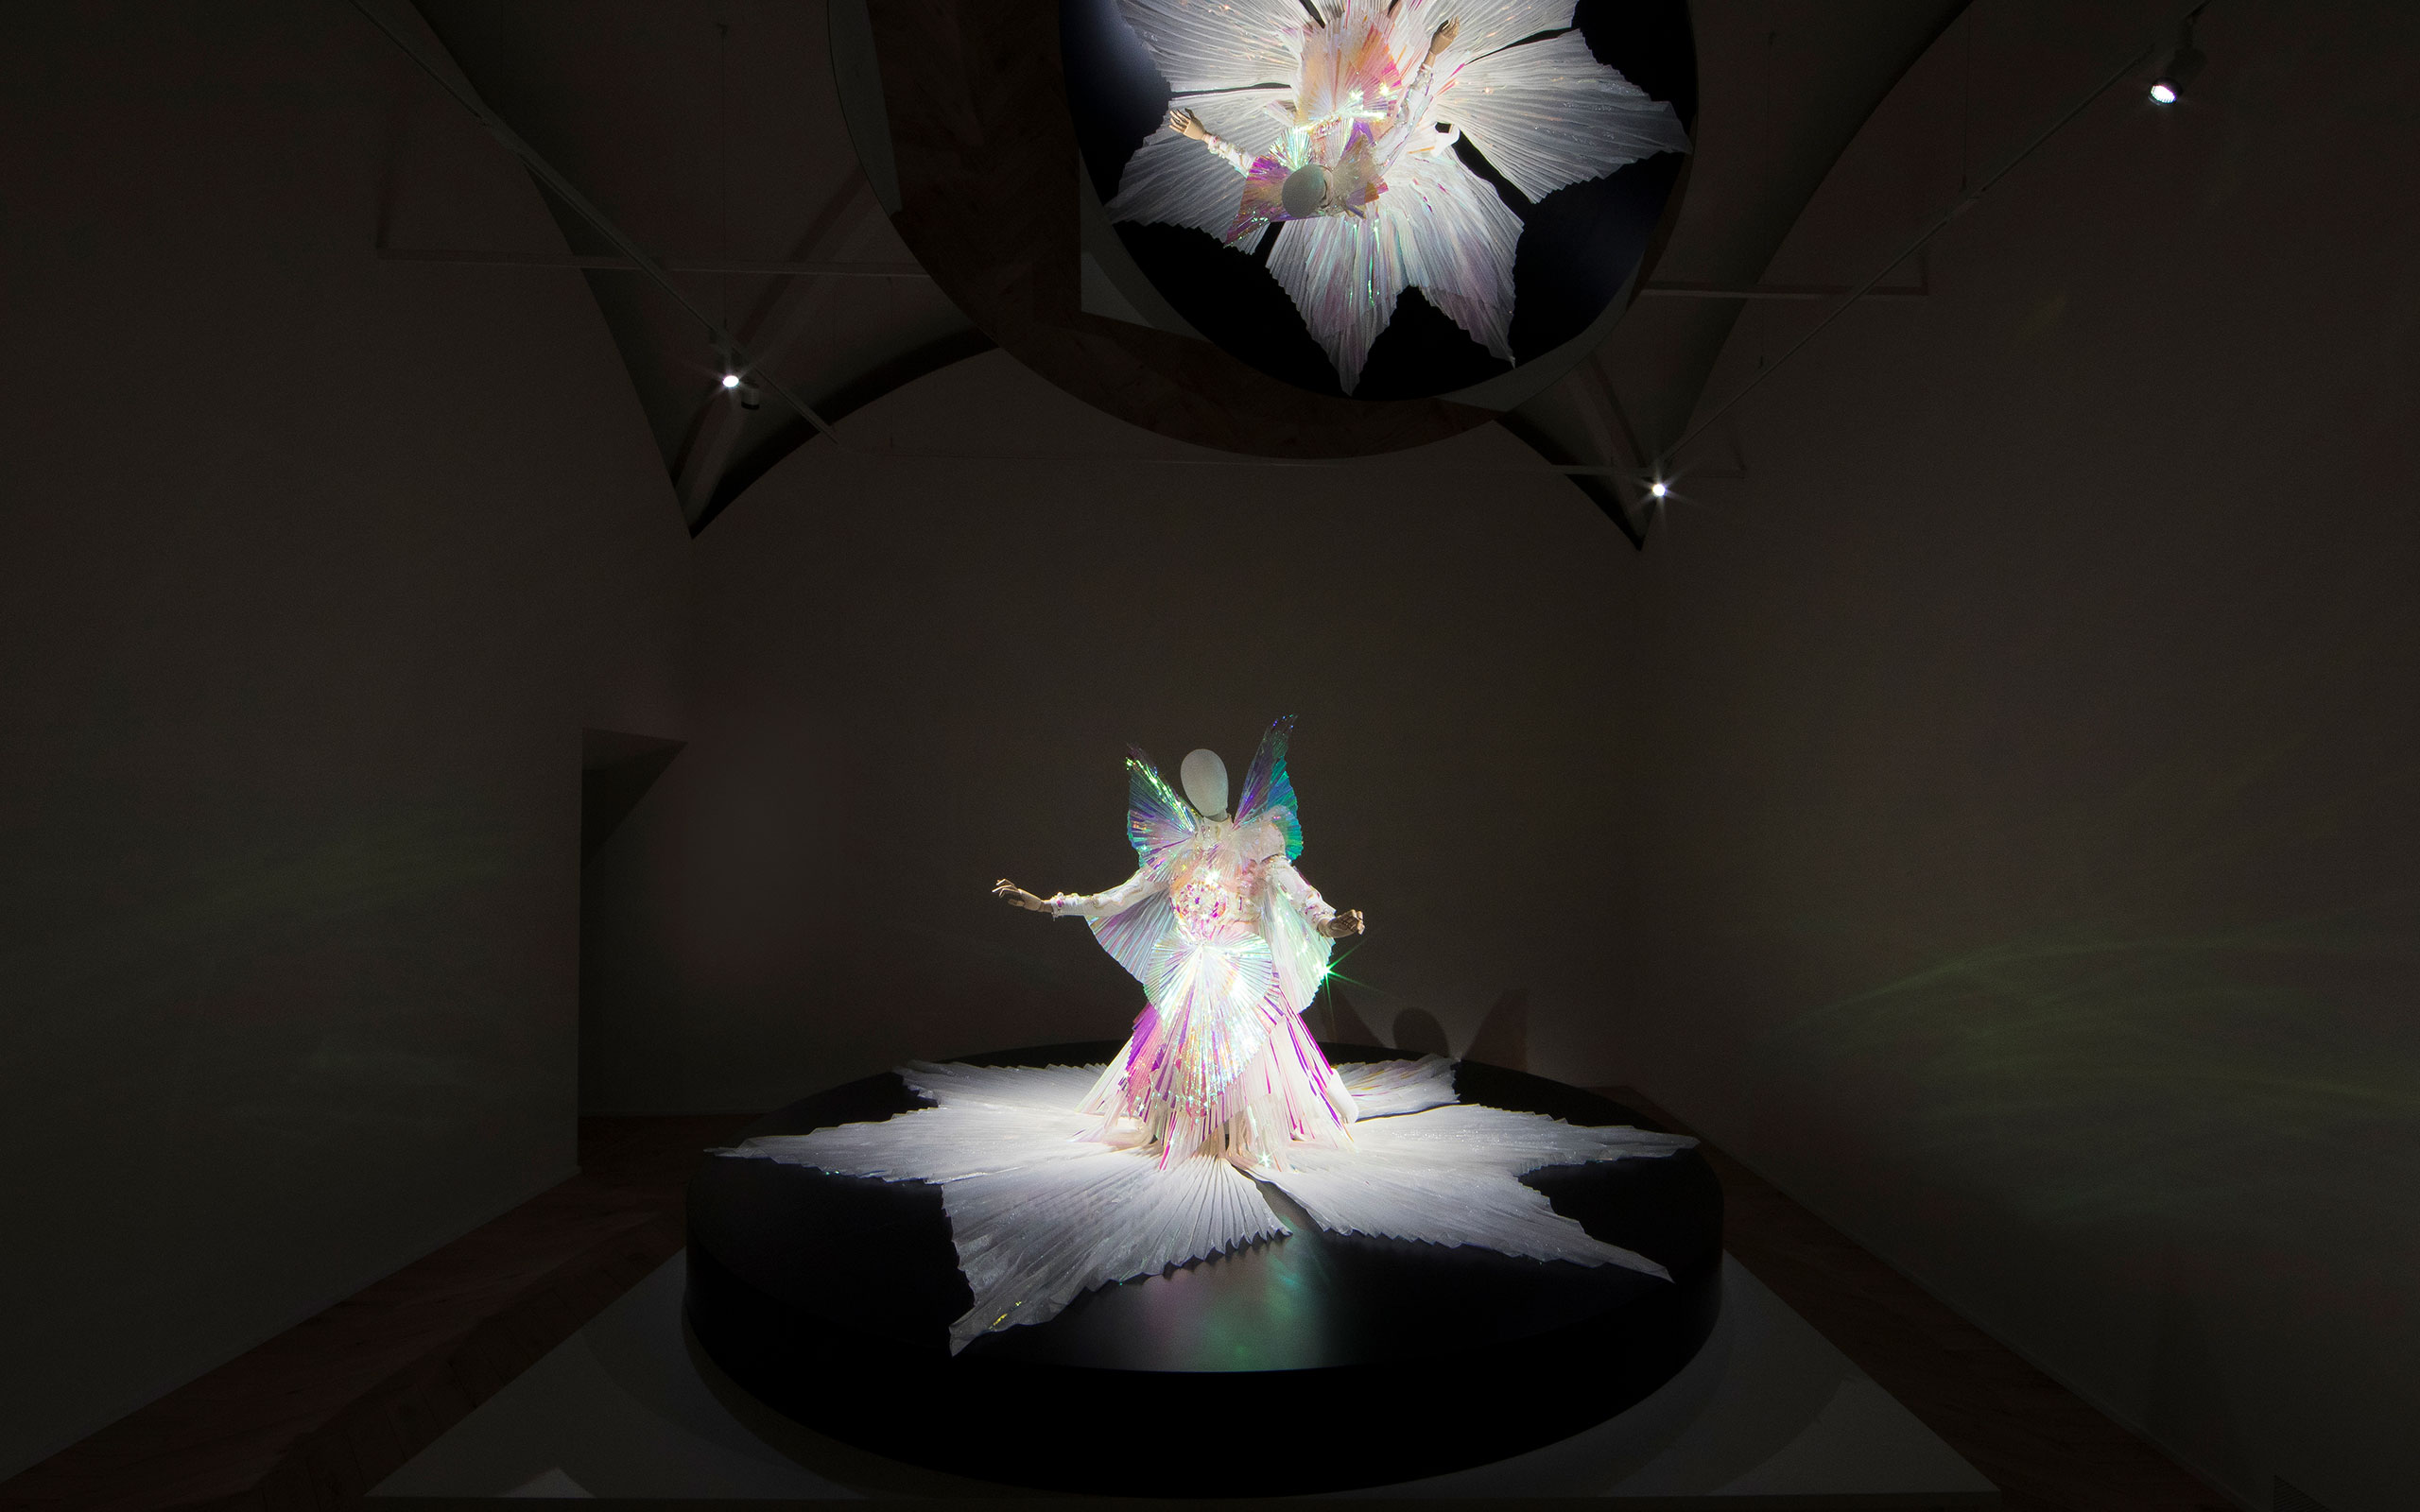 Gucci Garden Holds An Exhibition Dedicated To Björk